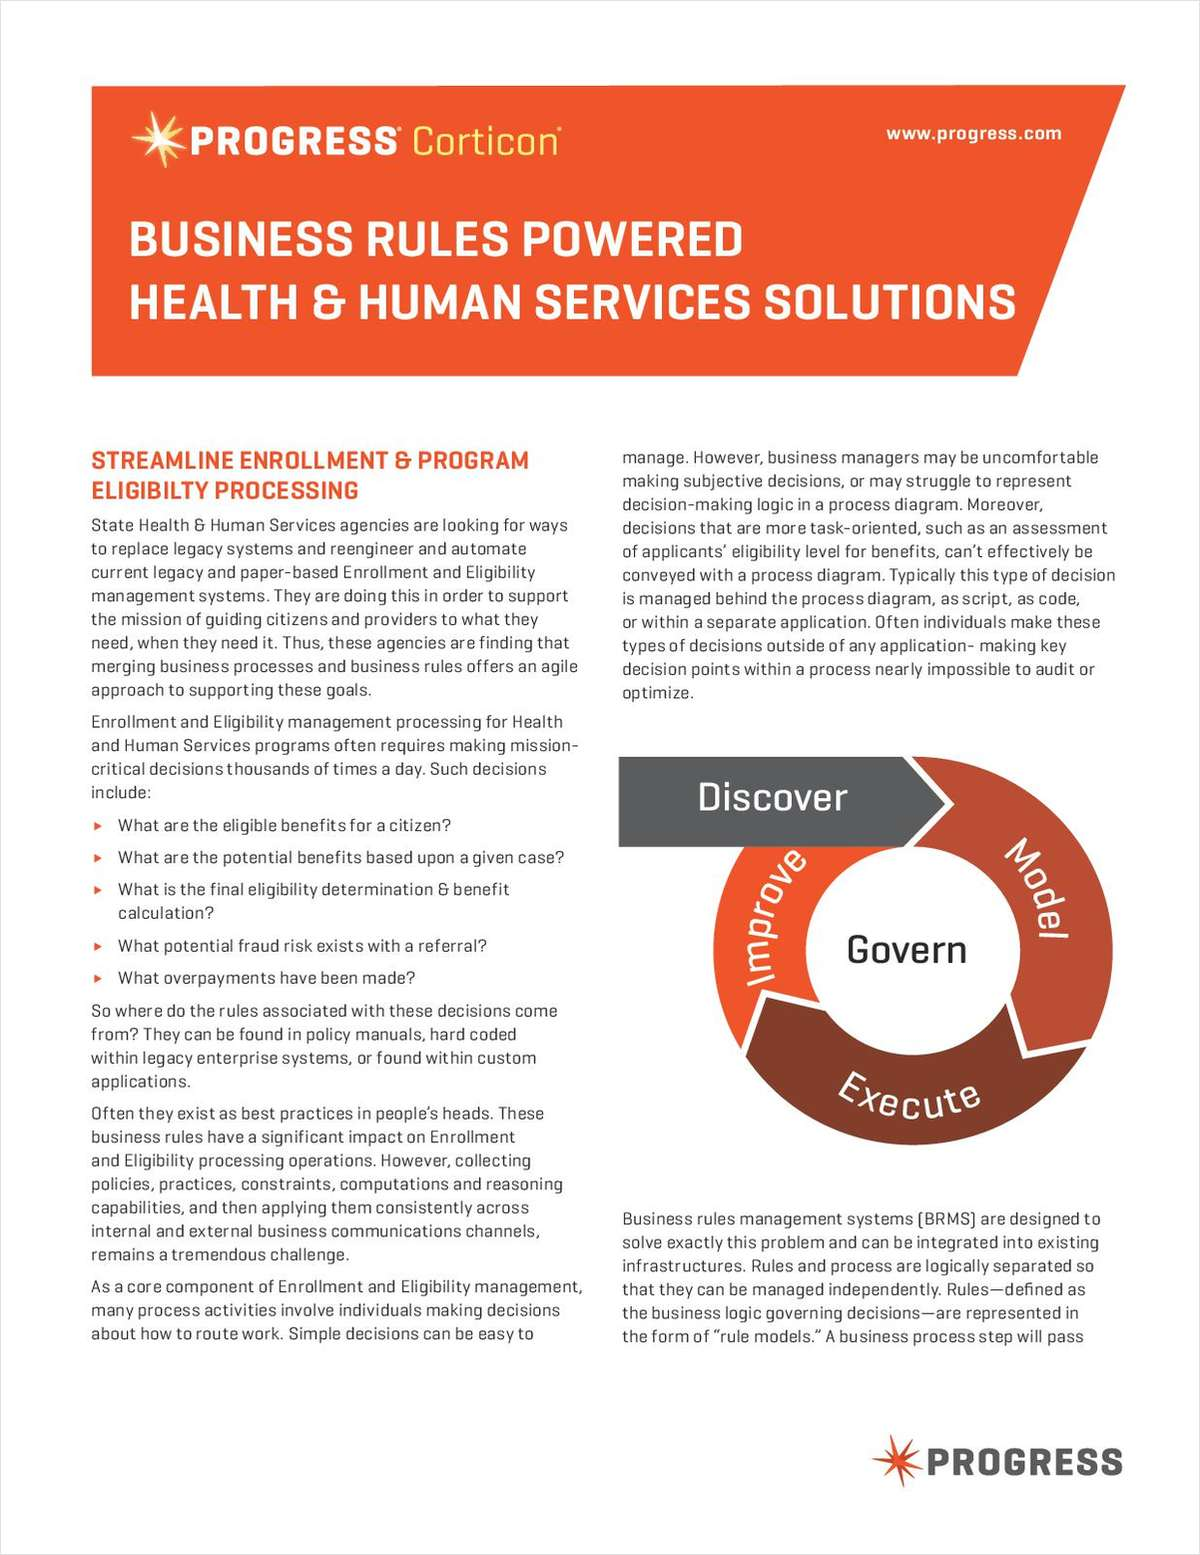 Business Rules Powered Health & Human Services Solutions